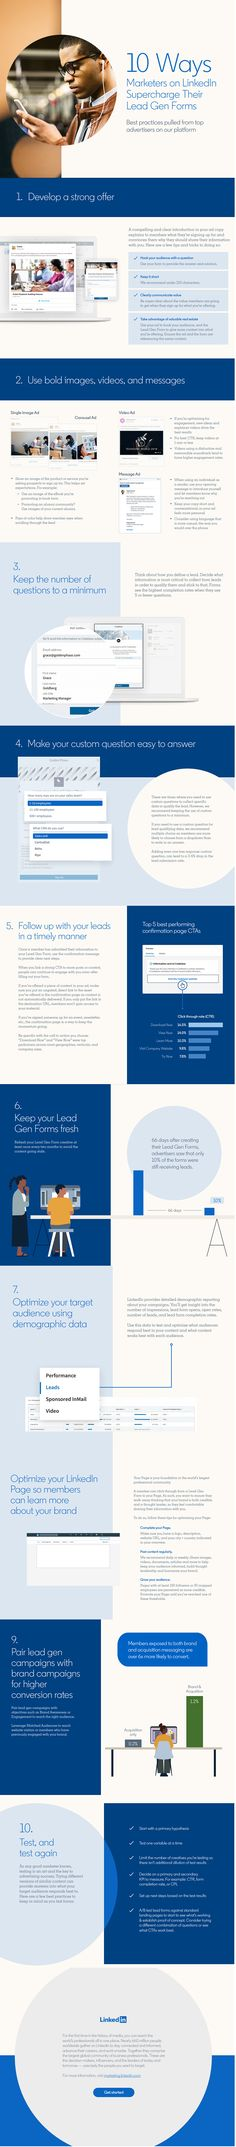 10 Ways Marketers Can Supercharge their LinkedIn Lead Gen Forms [Infographic] Inbound Marketing, Content Marketing, Social Media Marketing, Linkedin Advertising, Social Platform, Infographics, Shapes, Infographic, Info Graphics